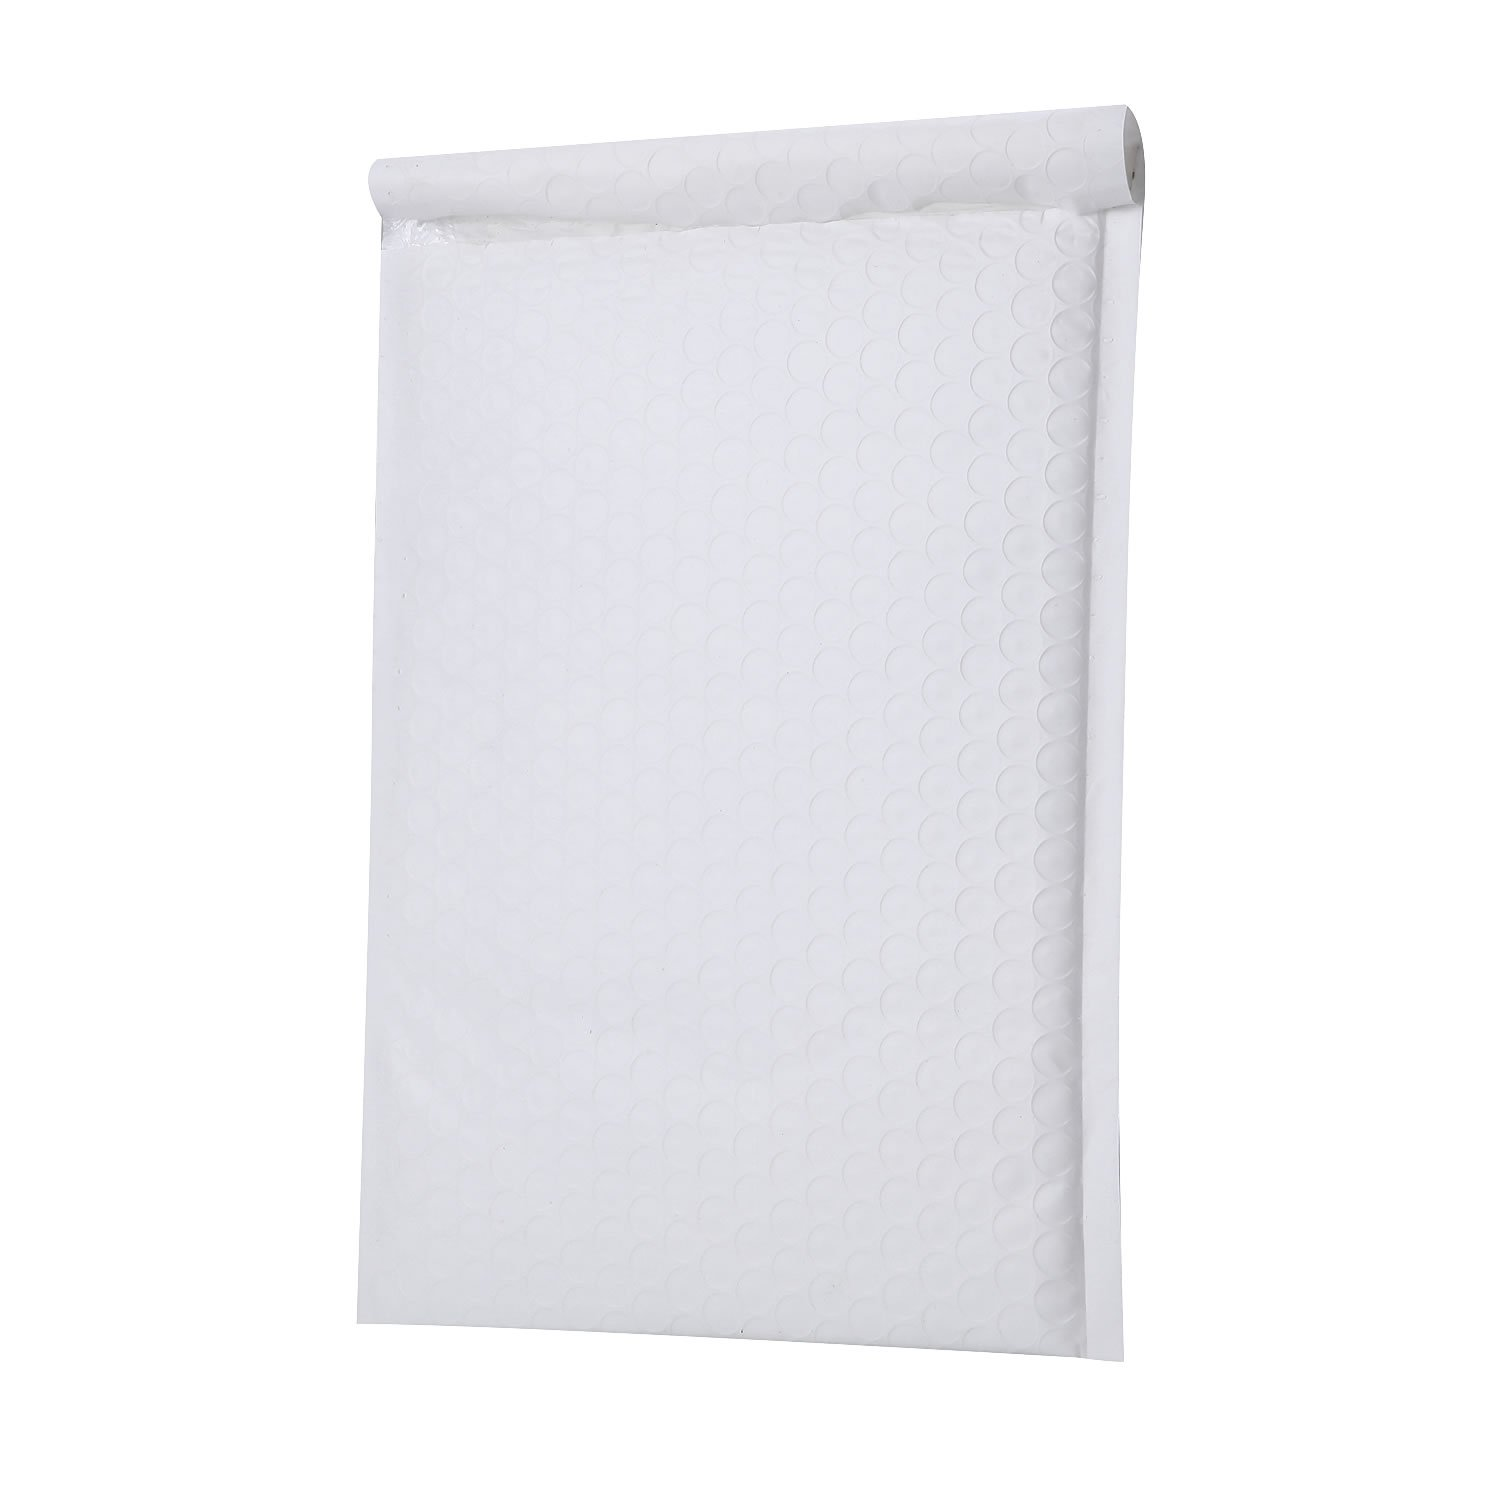 PackaPro #0 Poly Self-Seal Bubble Mailer 6X10 Special Extra Wide (actual size 7X10) Padded Envelopes Pack of 50 - White